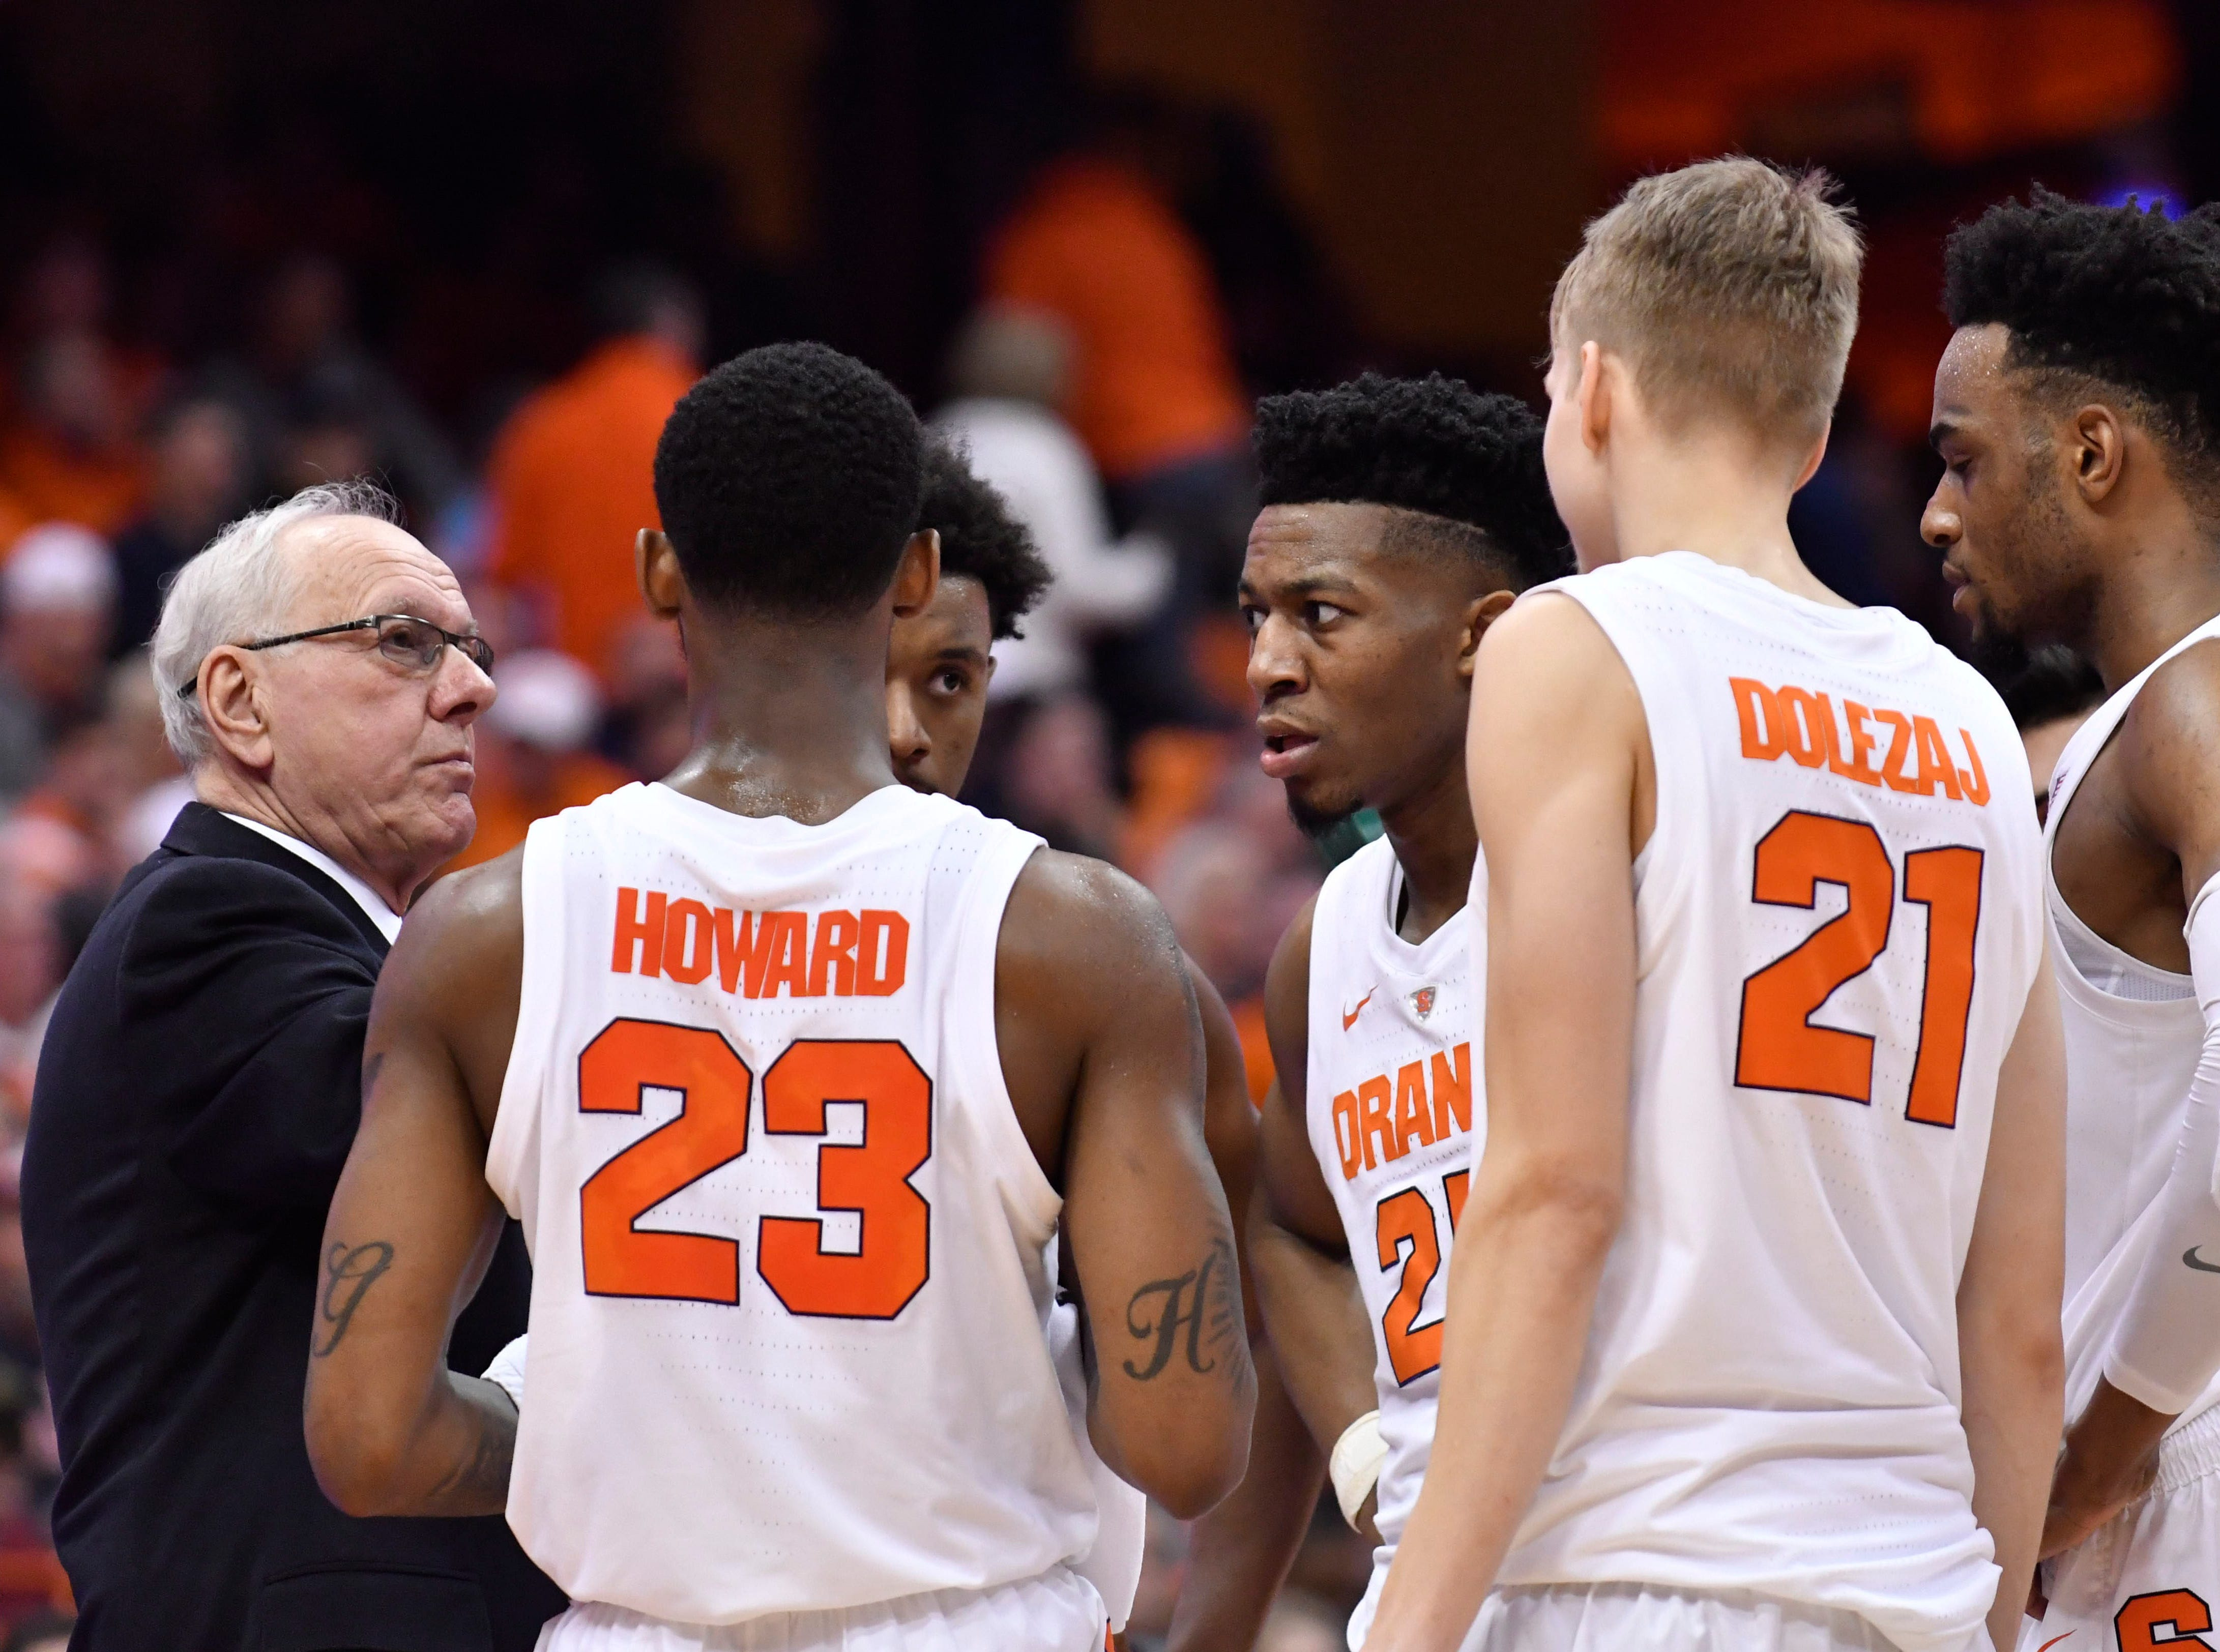 Jan 9, 2019; Syracuse, NY, USA; Syracuse Orange head coach Jim Boeheim gives instructions to his team during a timeout in the second half against the Clemson Tigers at the Carrier Dome.